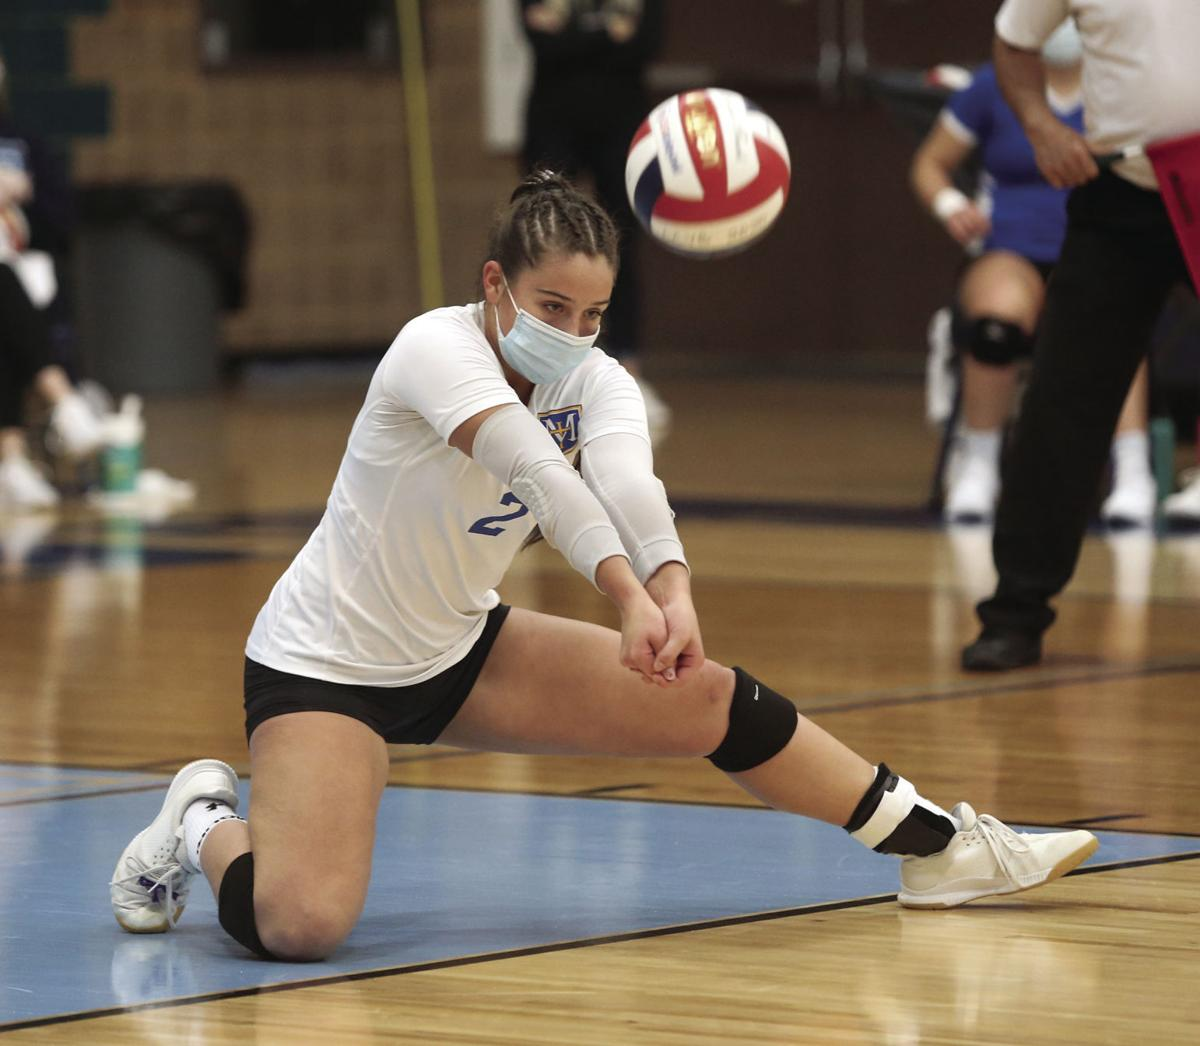 McDonell Prentice volleyball